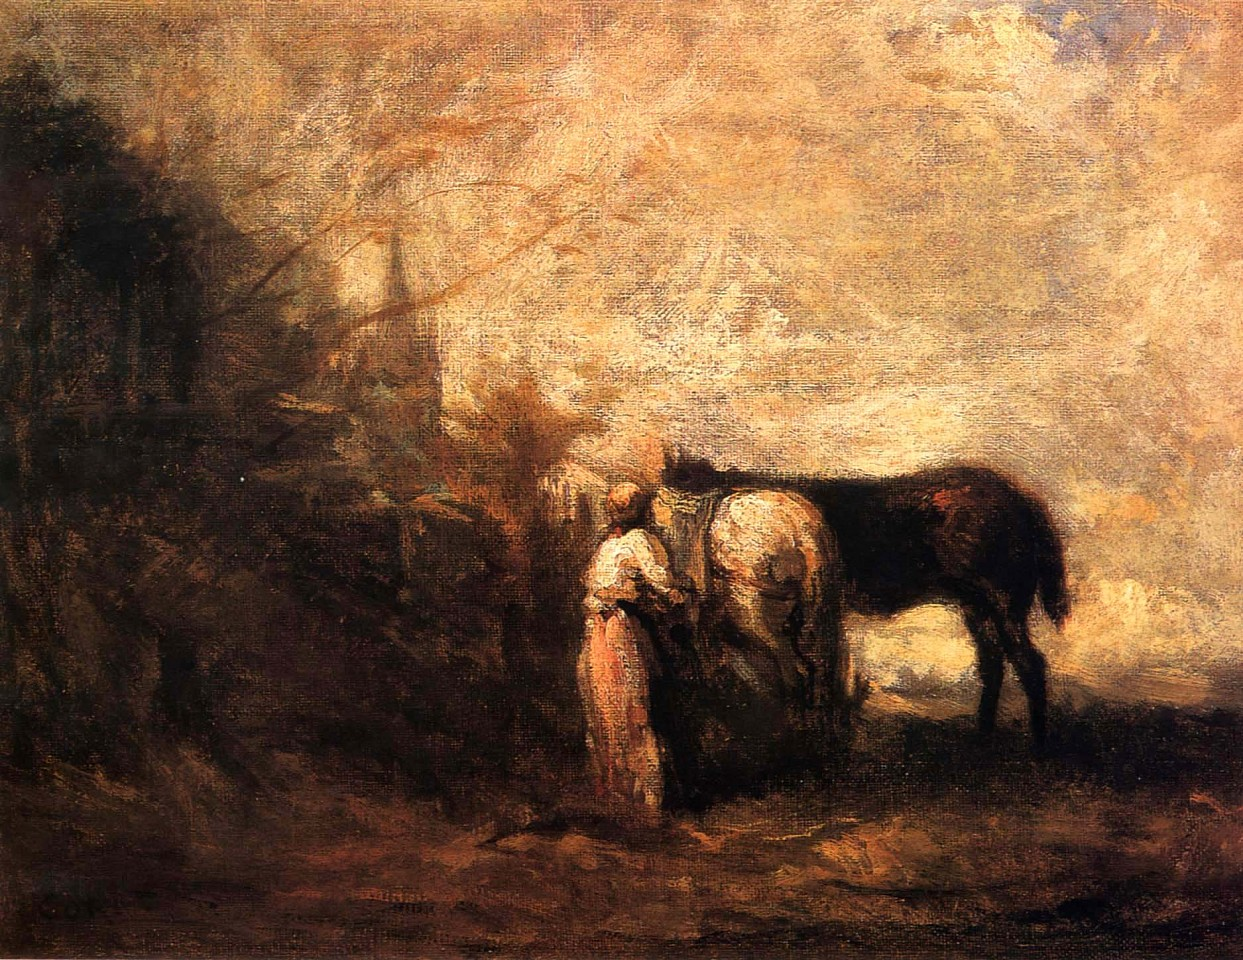 Jean Baptiste Camille Corot ,   Les Chevaux de Wouvermans  ,  1872-74     Oil on canvas ,  10 1/4 x 13 3/8 in. (26 x 34 cm)     COR-004-PA